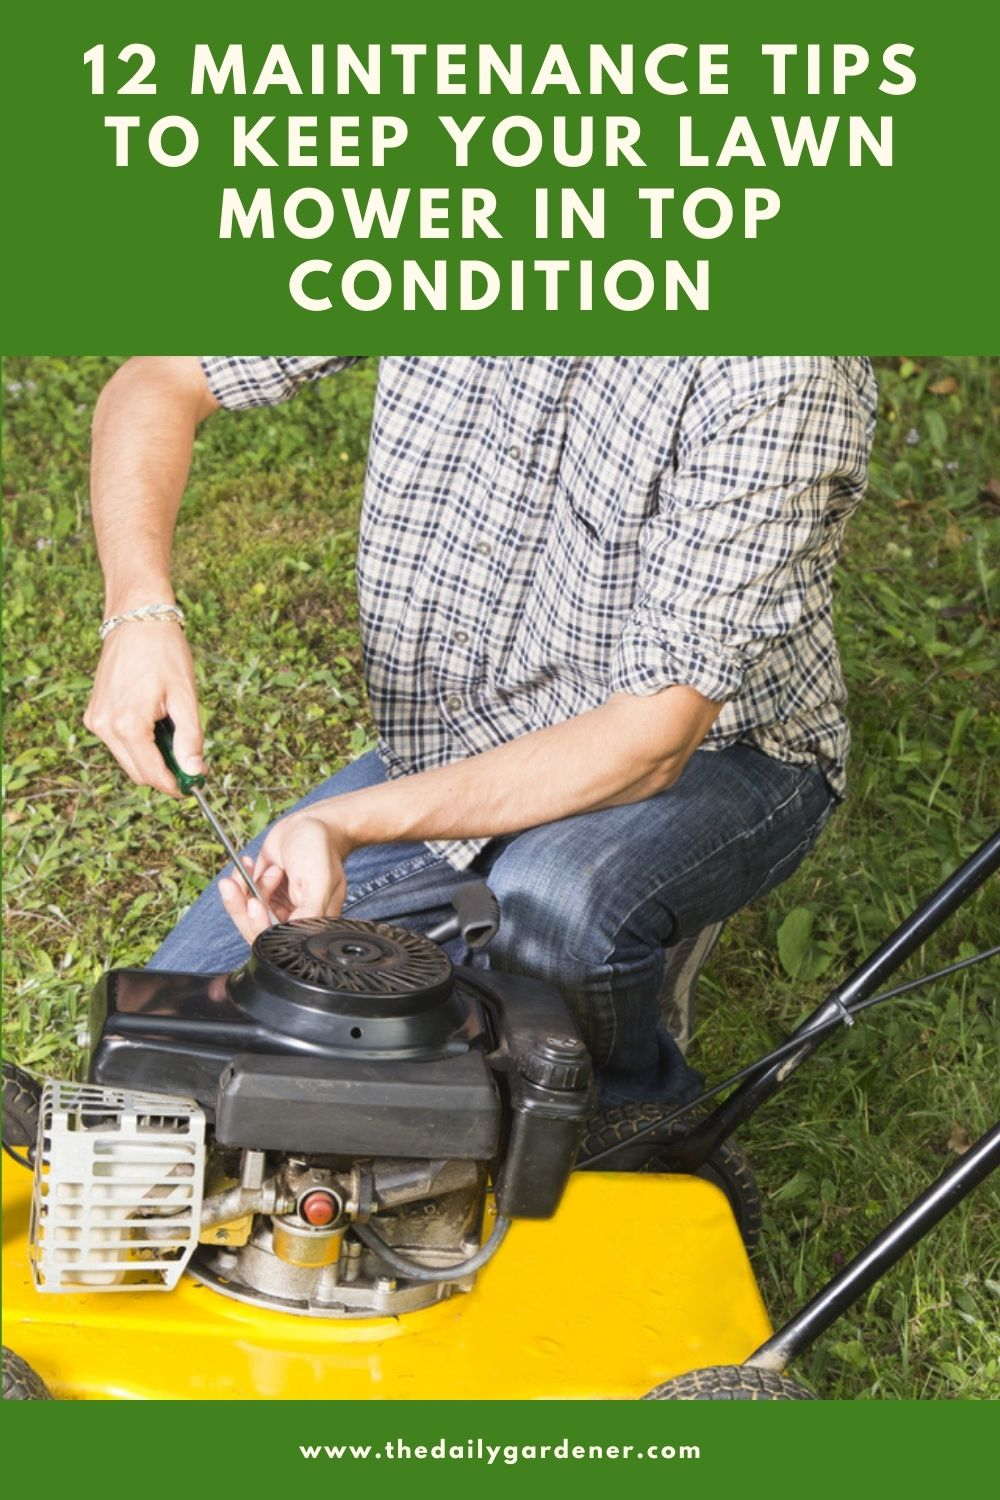 12 Maintenance Tips to keep Your Lawn Mower in Top Condition 1